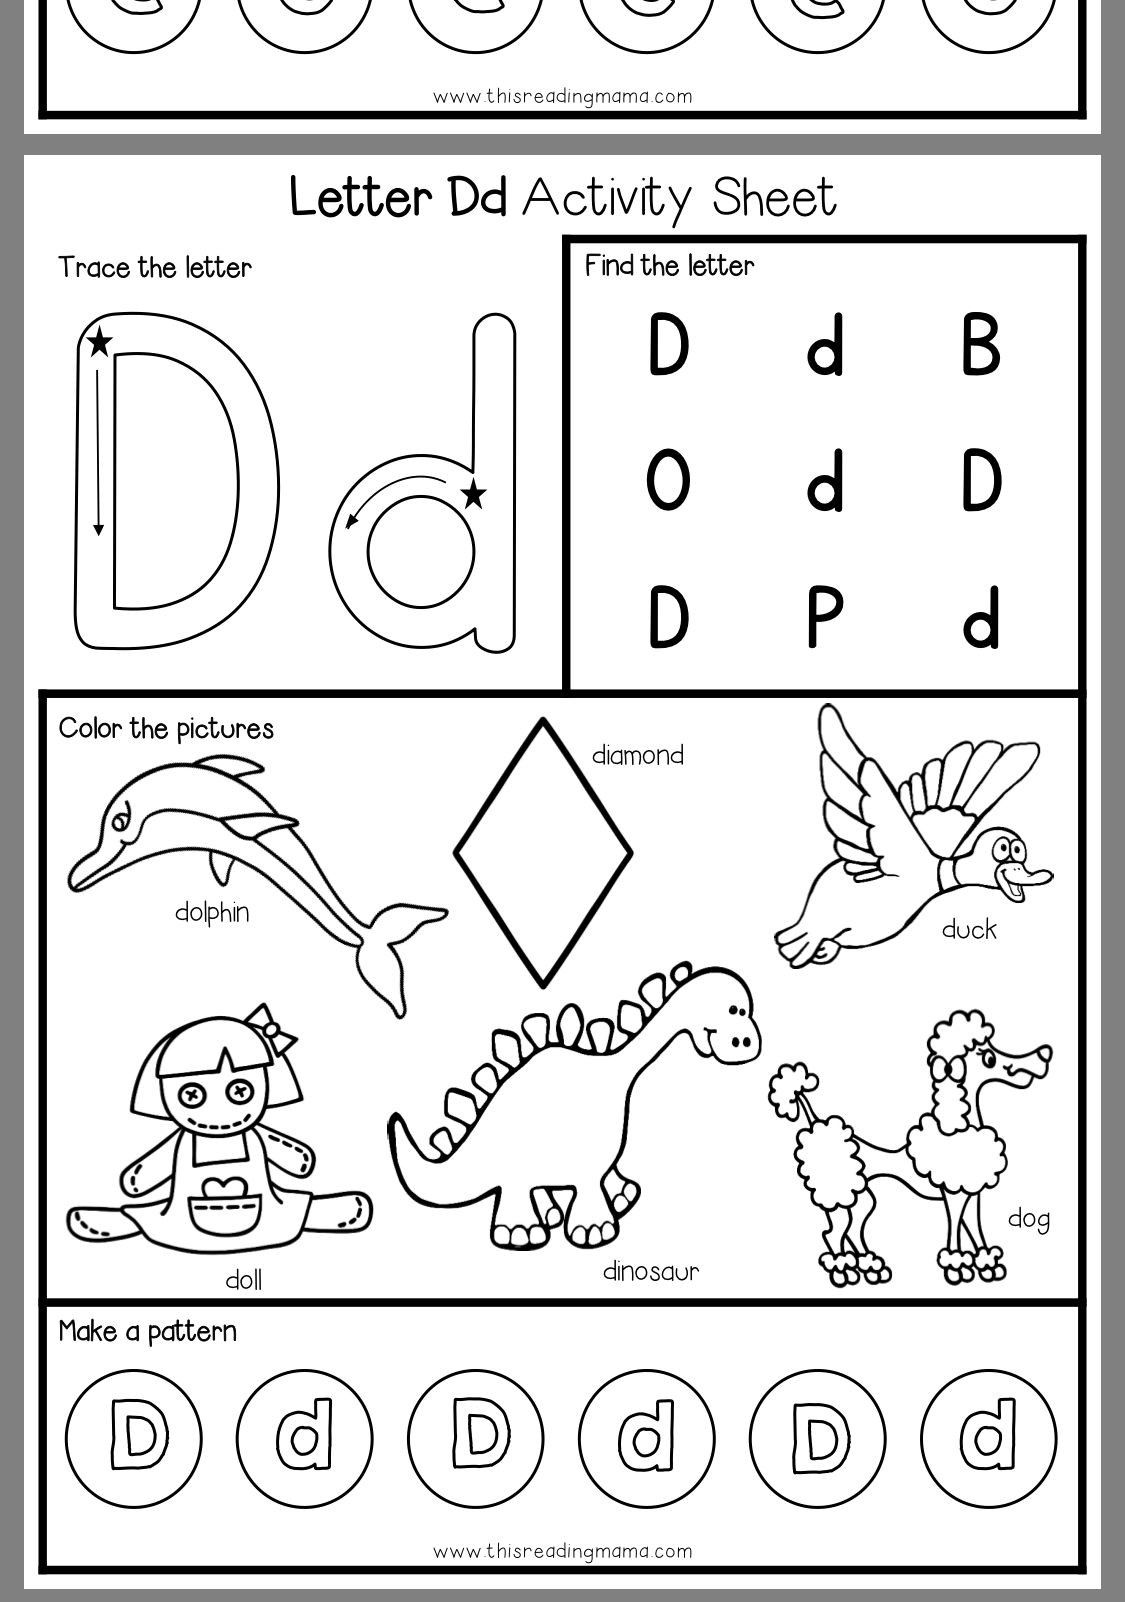 4 Worksheet Preschool Activity Sheets Coloring Pin By